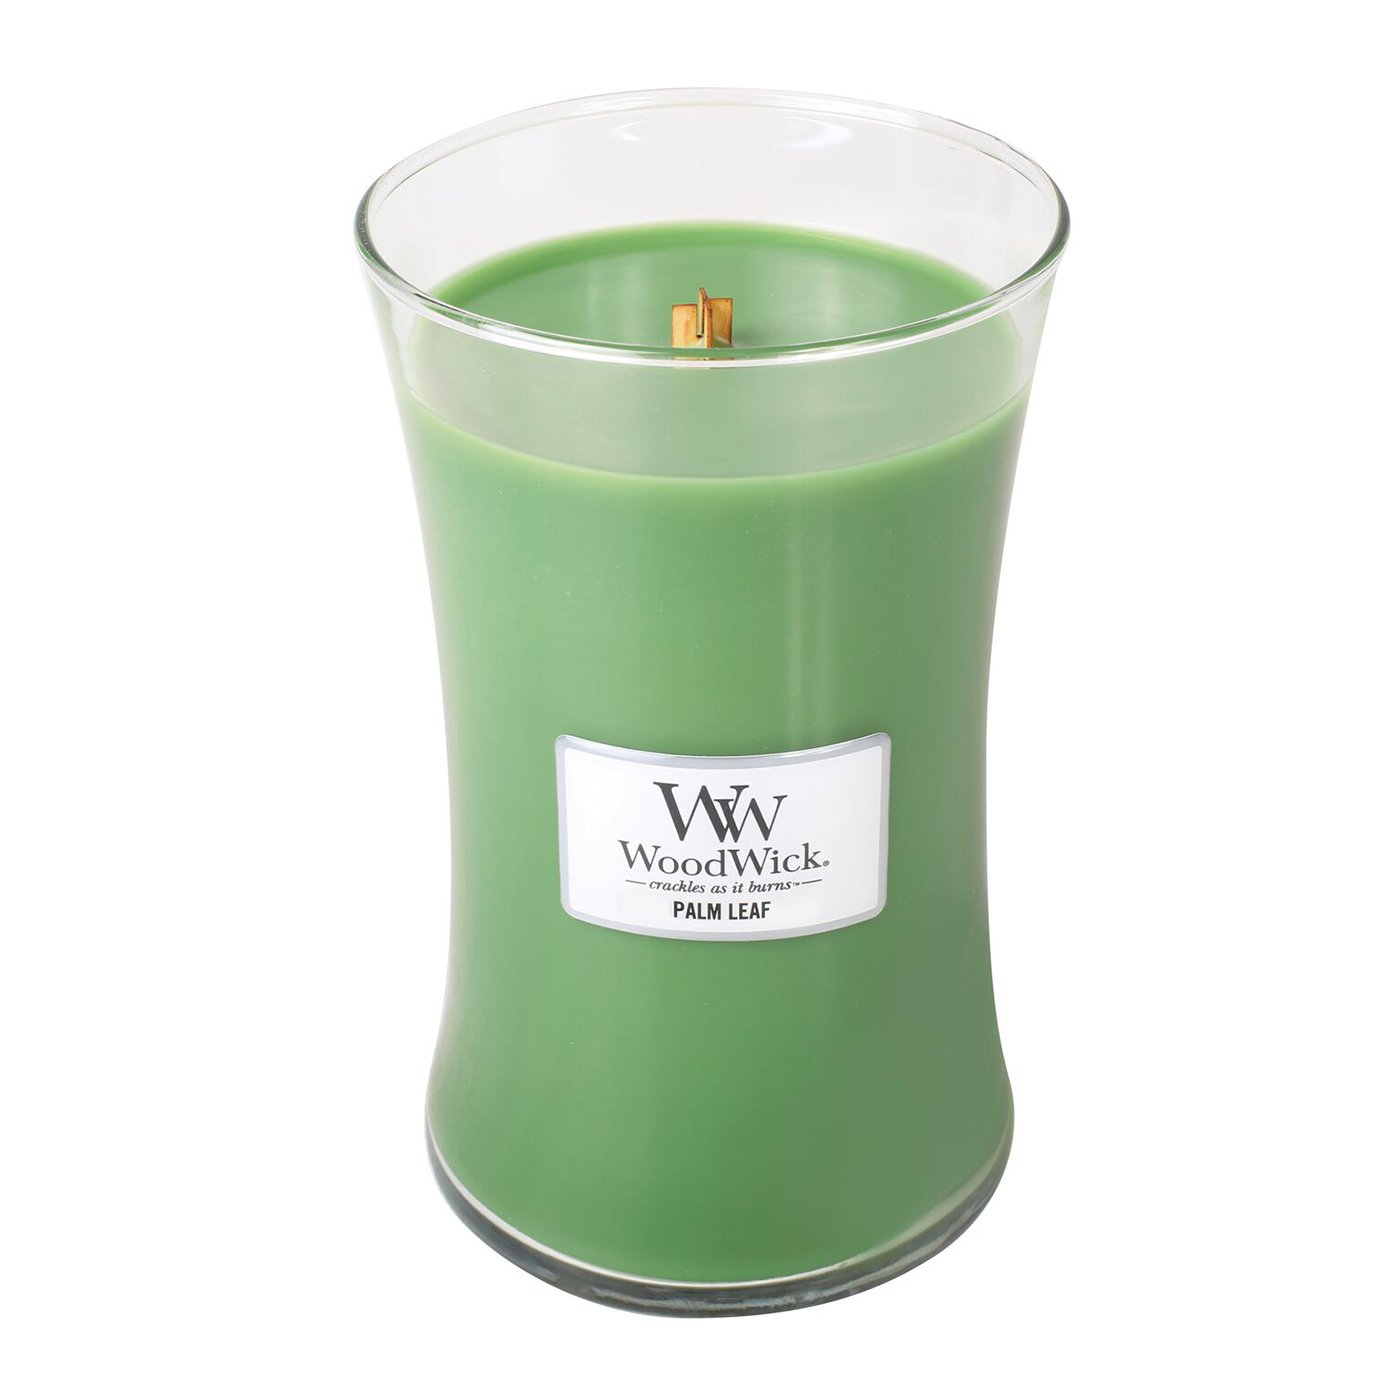 WoodWick PALM LEAF, Highly Scented Candle, Classic Hourglass Jar, Large 18cm, 640ml B07B6B3H6C